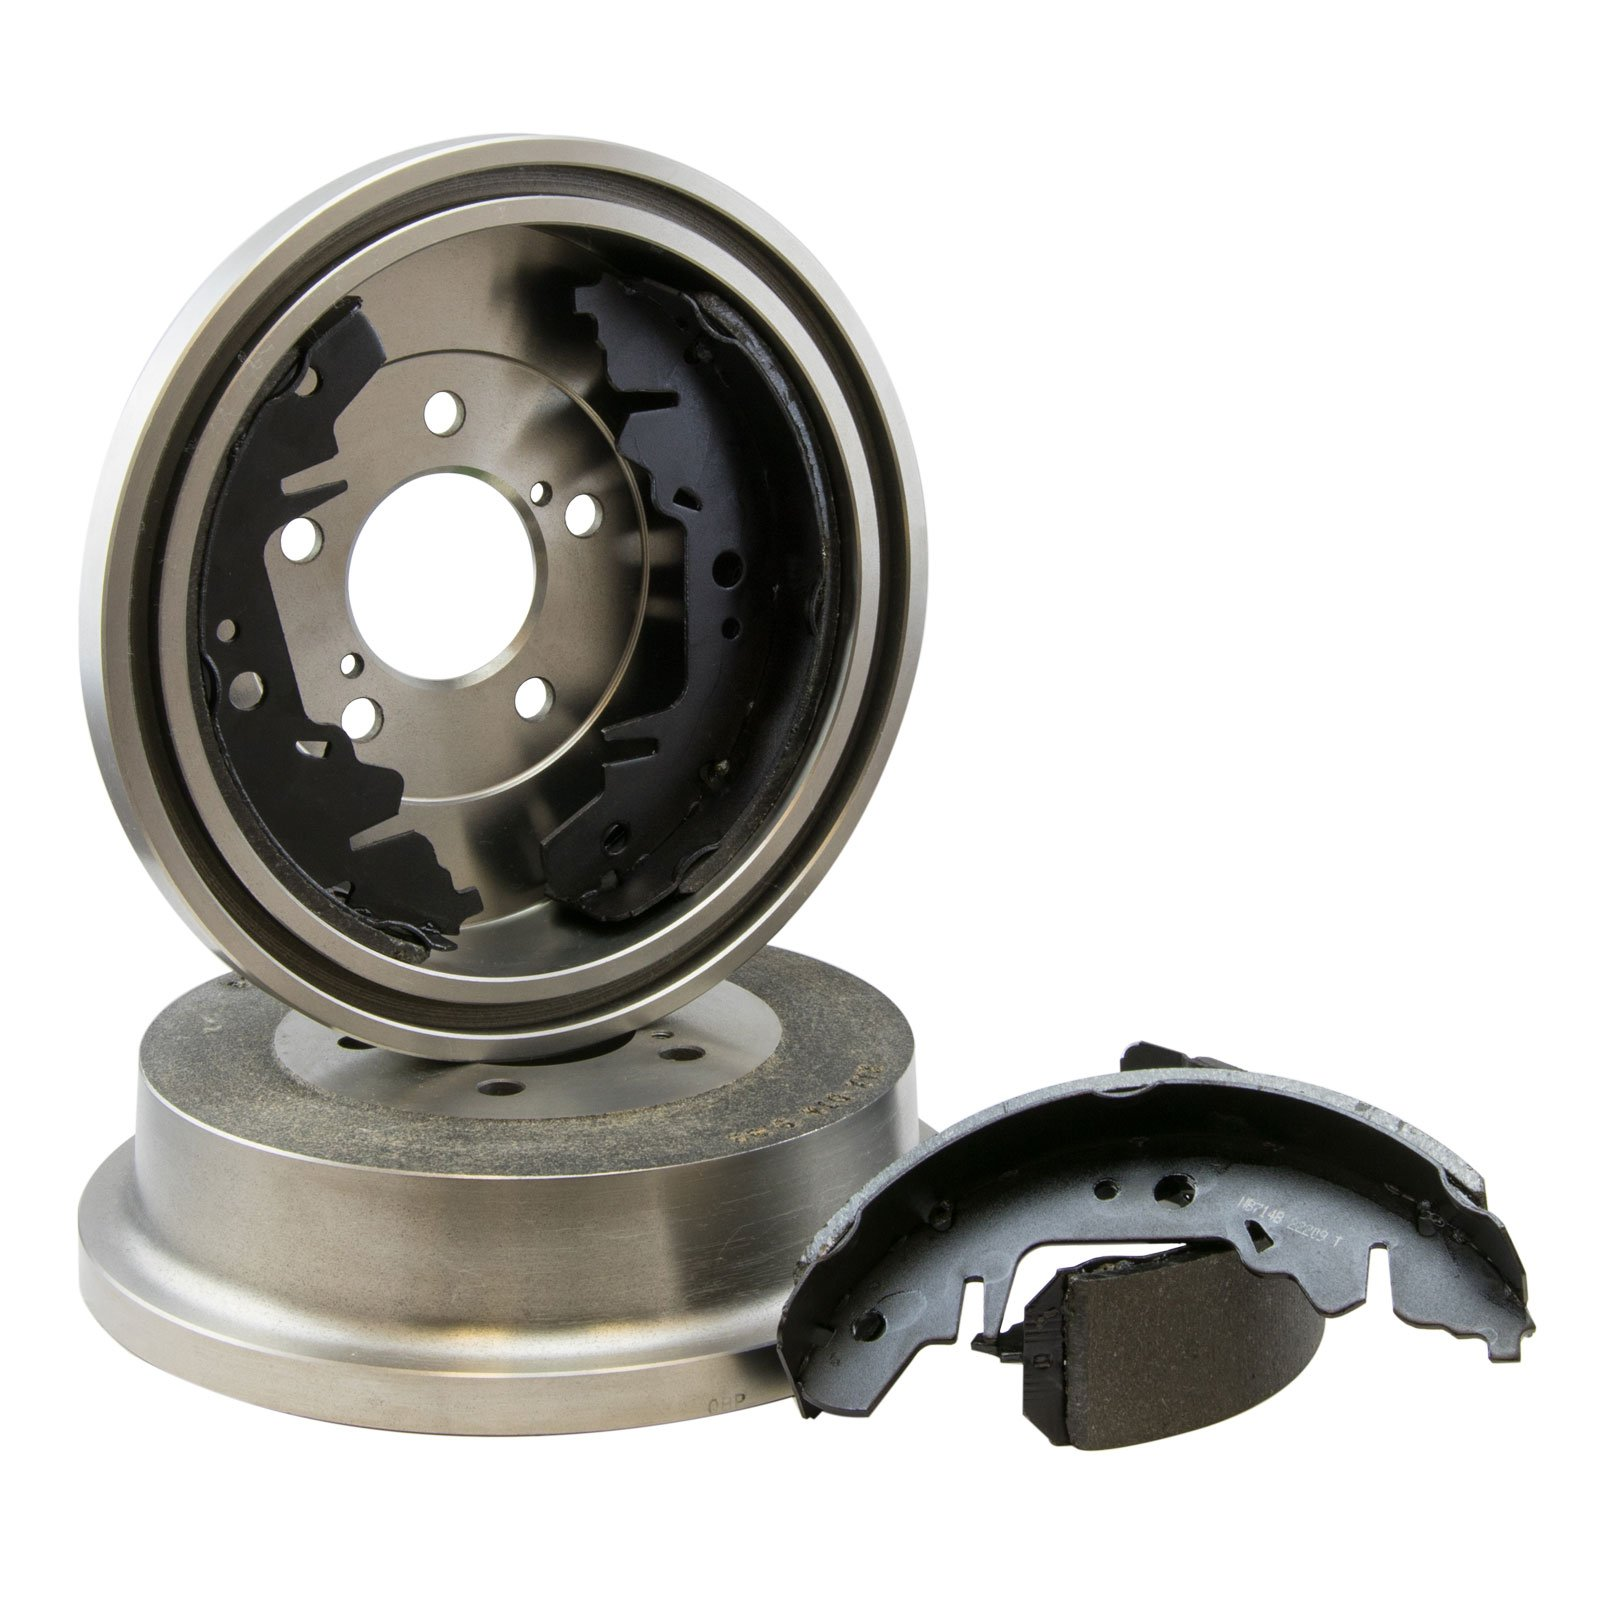 Max DS925142 Rear Premium OE Replacement Drums and Shoes Combo Brake Kit by Max Advanced Brakes